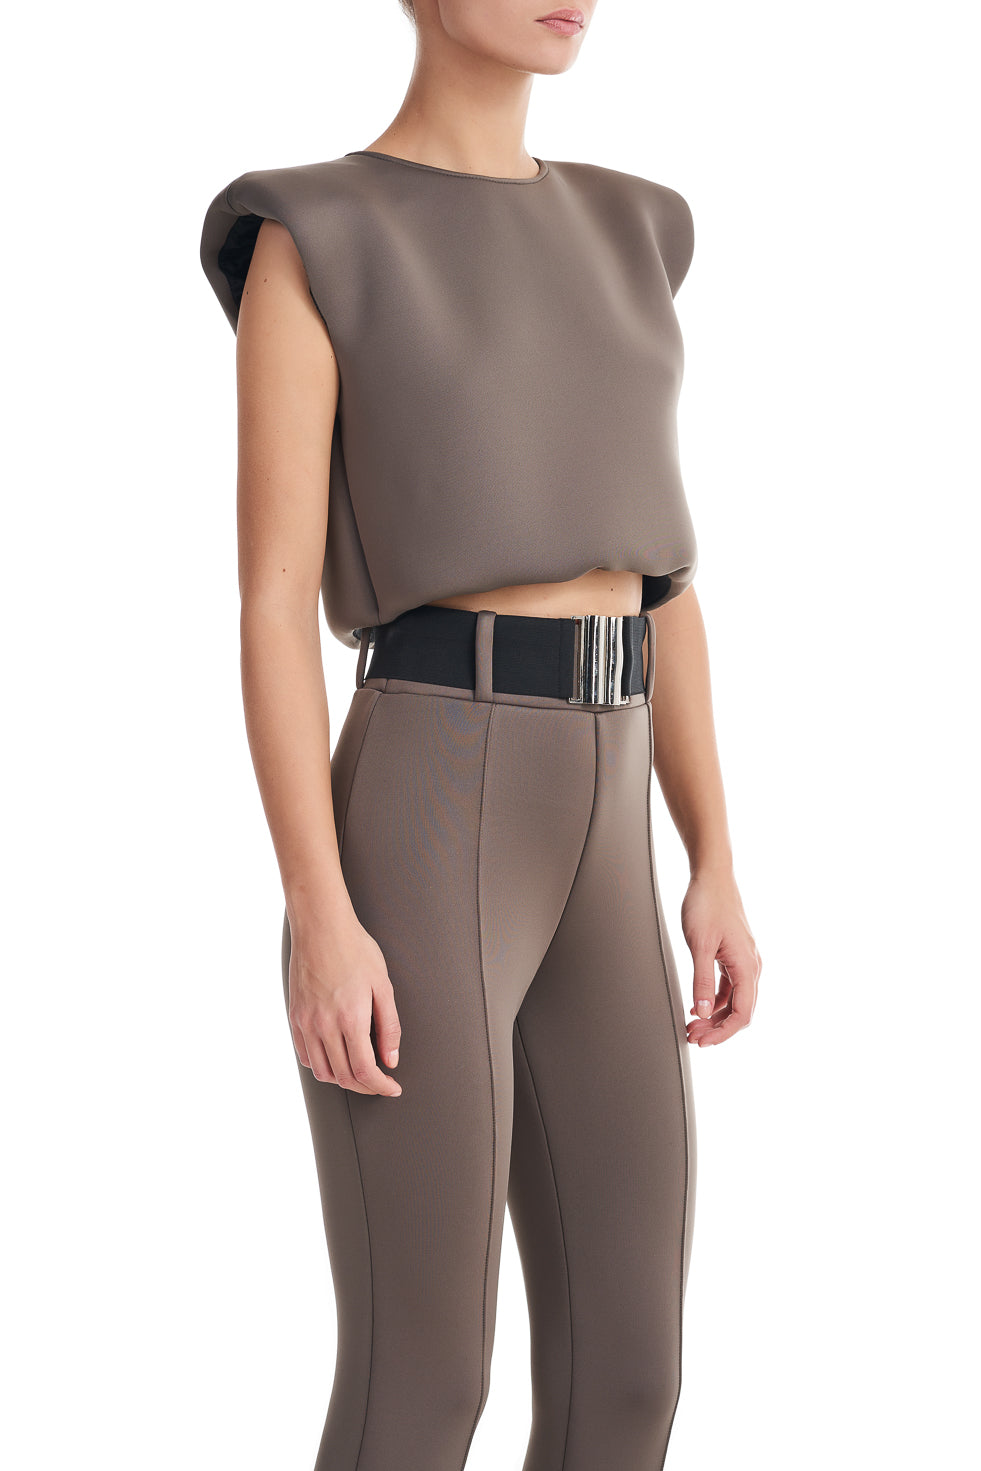 Withney Khaki Sleeveless Shoulder Pad Top